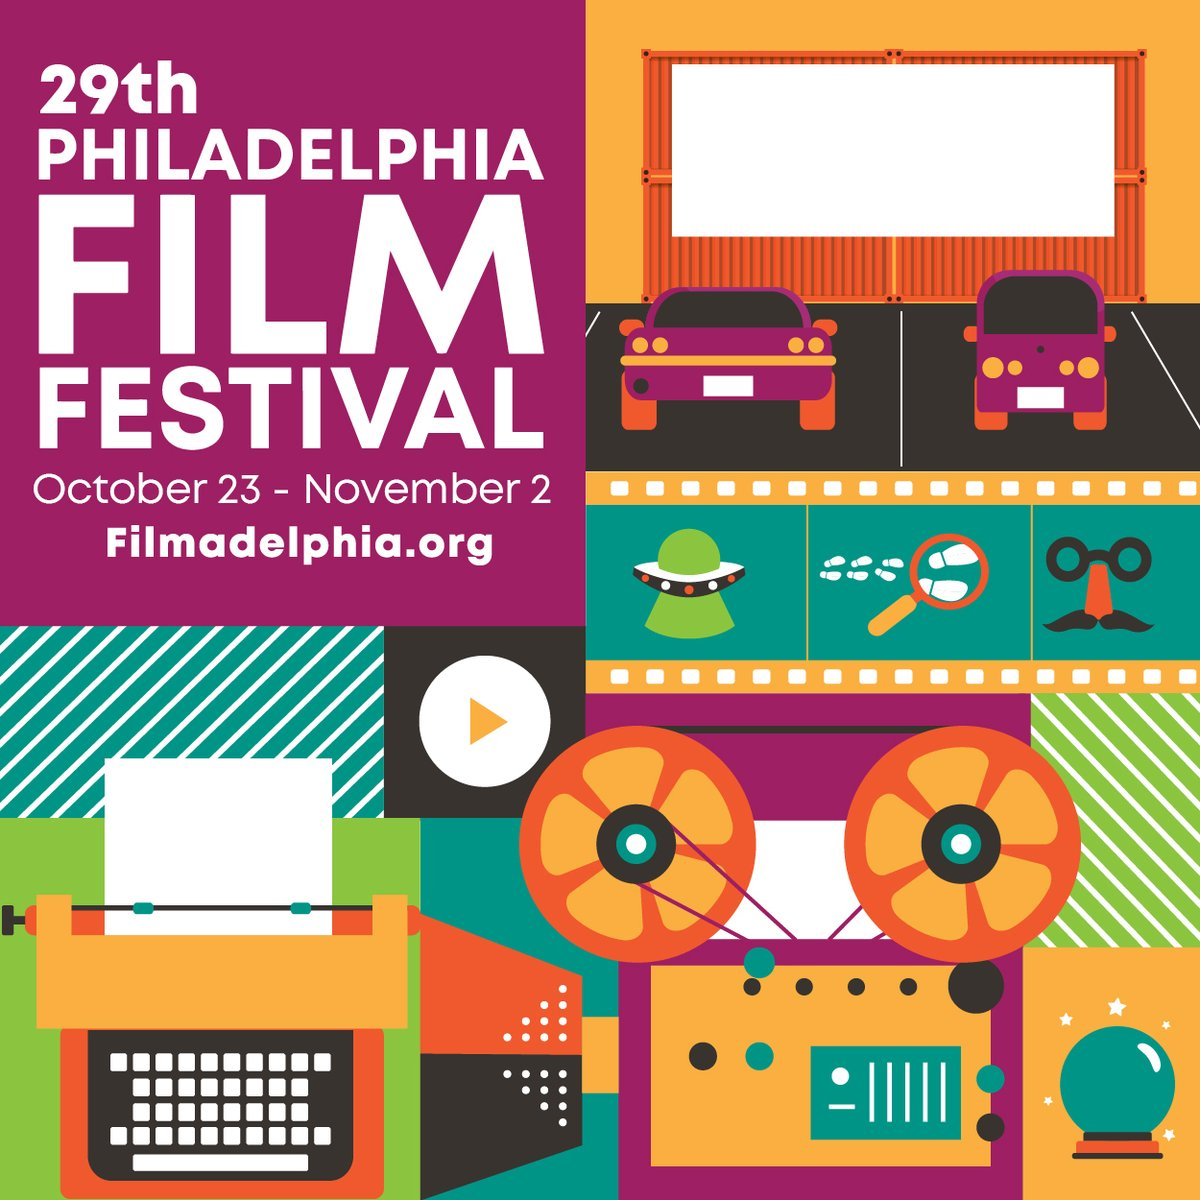 PFF29 DATE CHANGE | October 23 - November 2  It has come to our attention that October 22, the intended start date of the 29th Philadelphia Film Festival, is the same night as the final Presidential Debate. https://t.co/fzlFmIxGaO